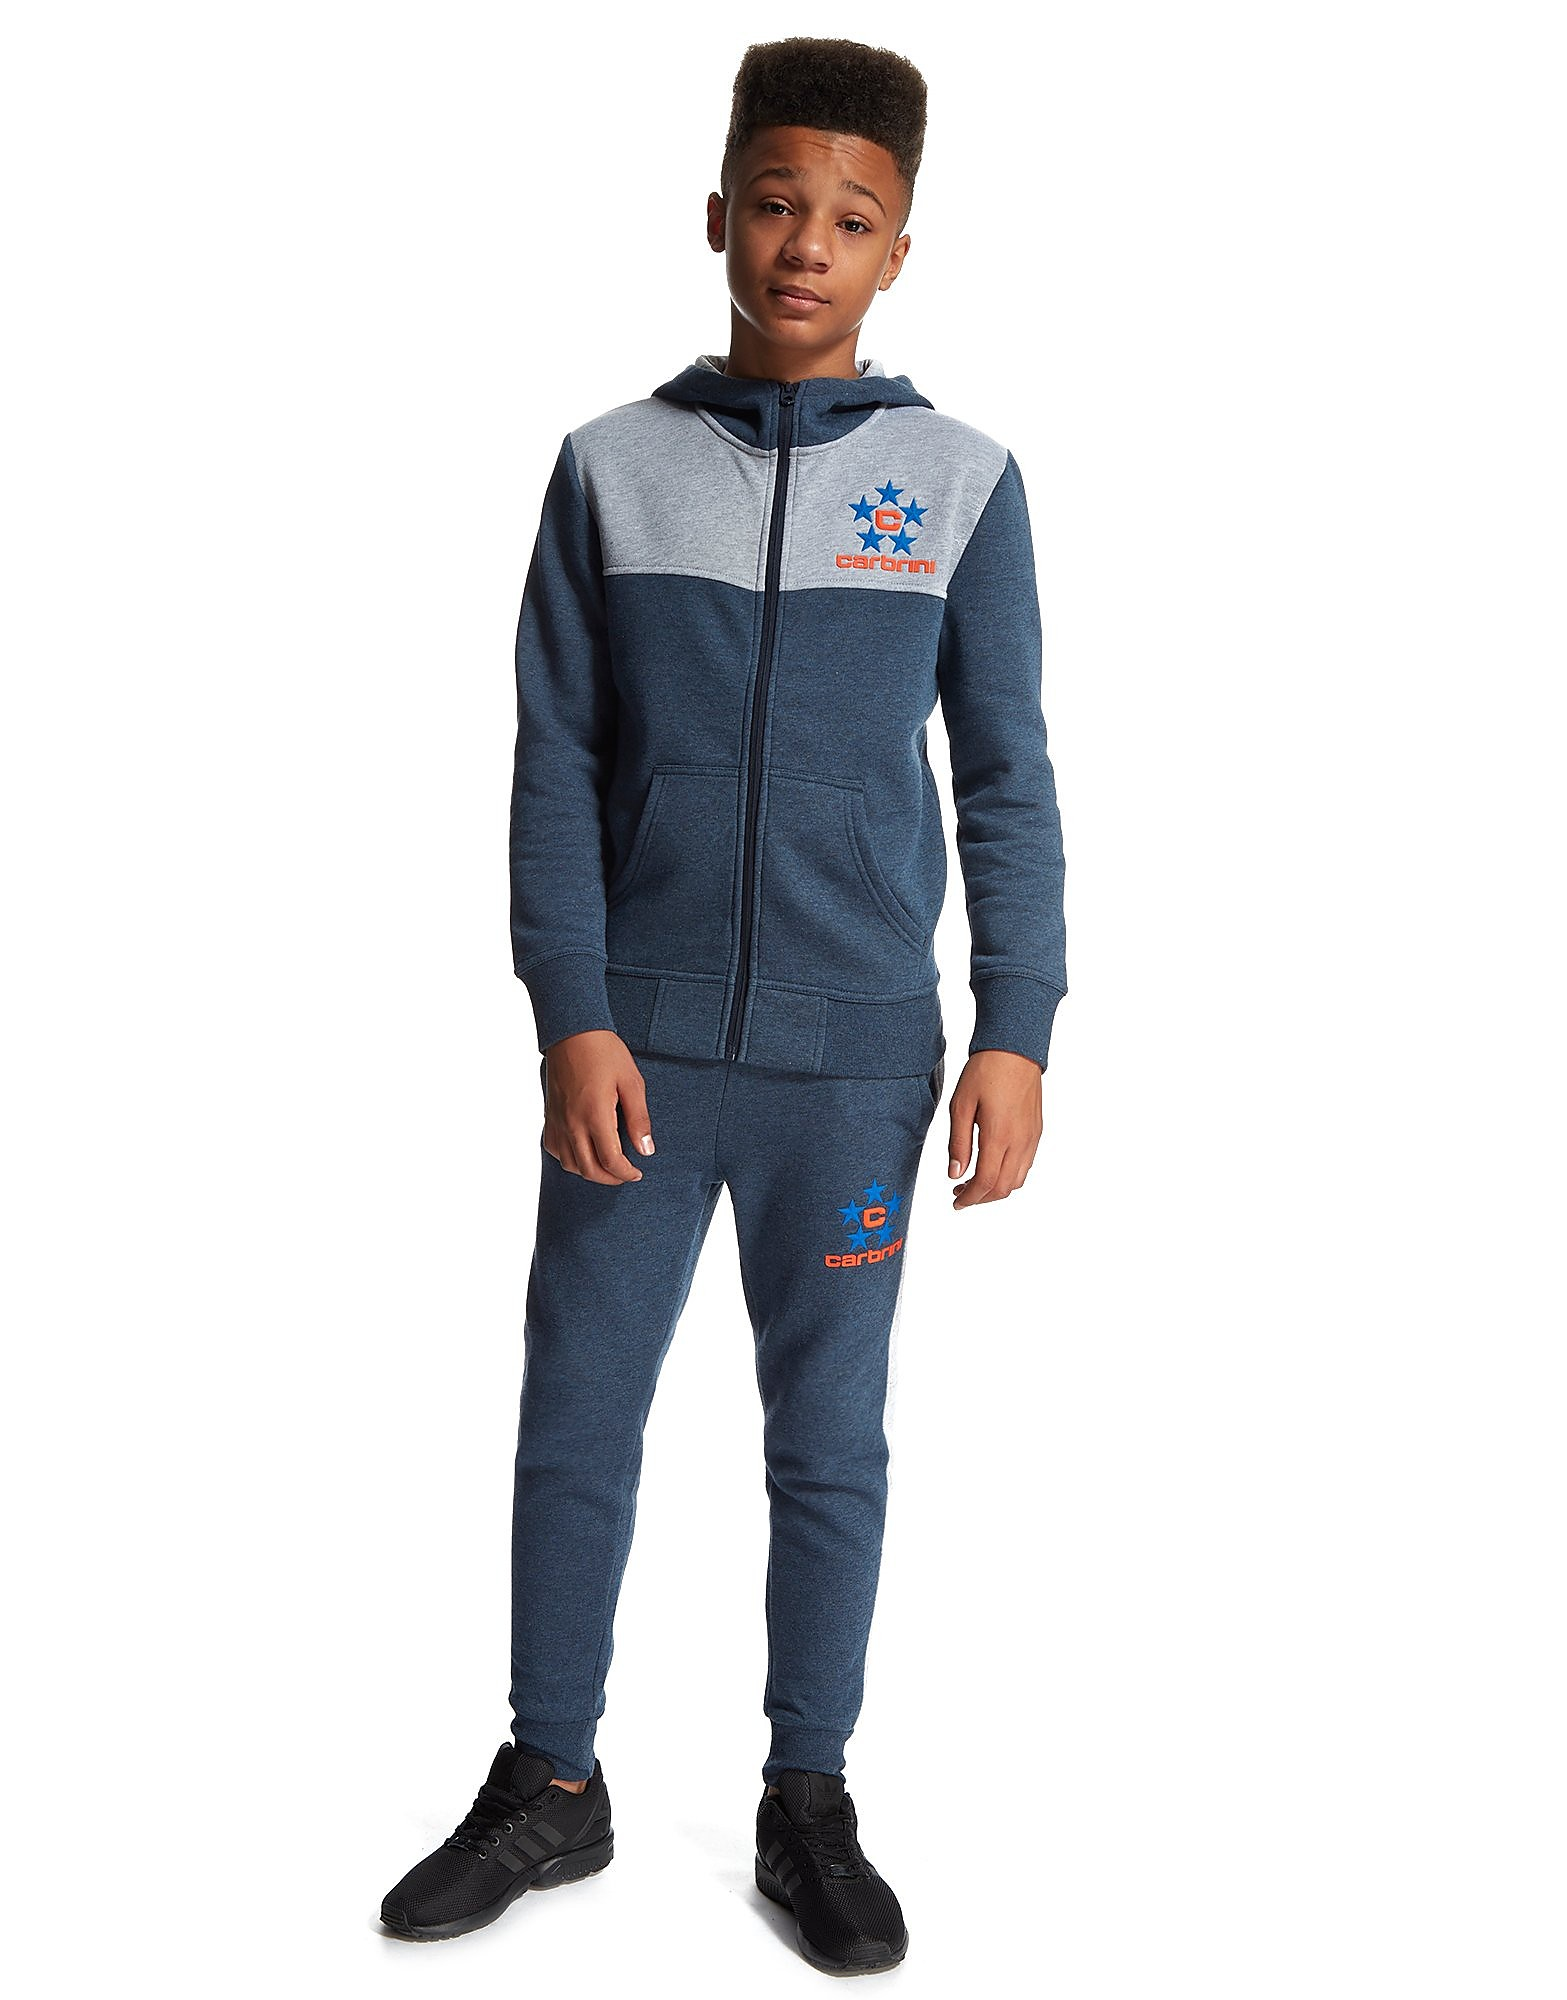 Carbrini Dutch 2 Suit Junior